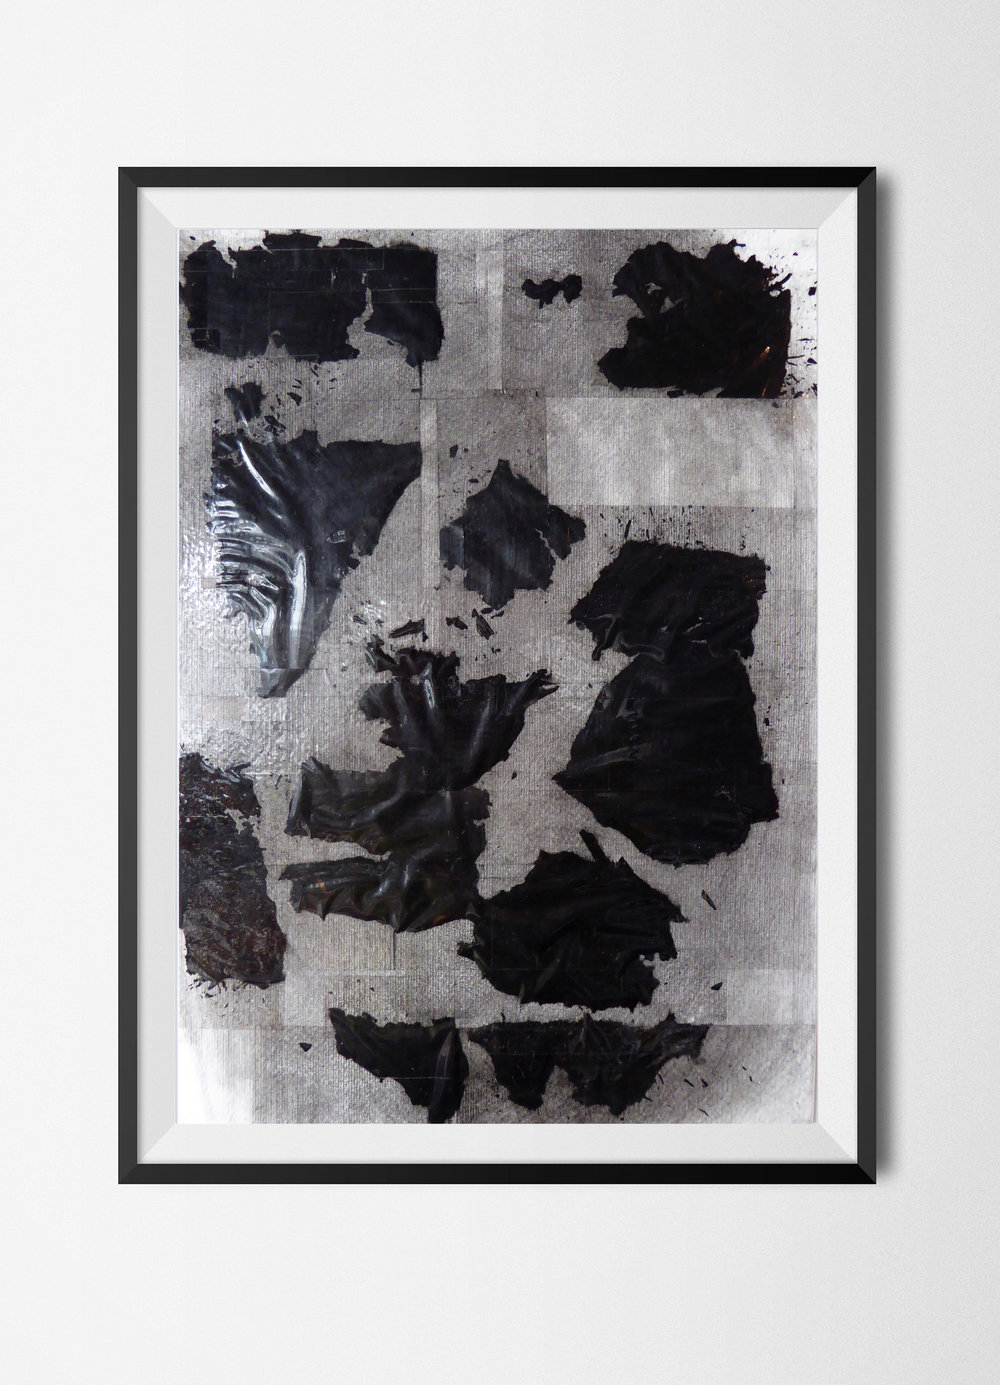 Fragments 8, 2015 Burnt papers, ashes and tape on paper 42 x 29,7 cm Signed at the back